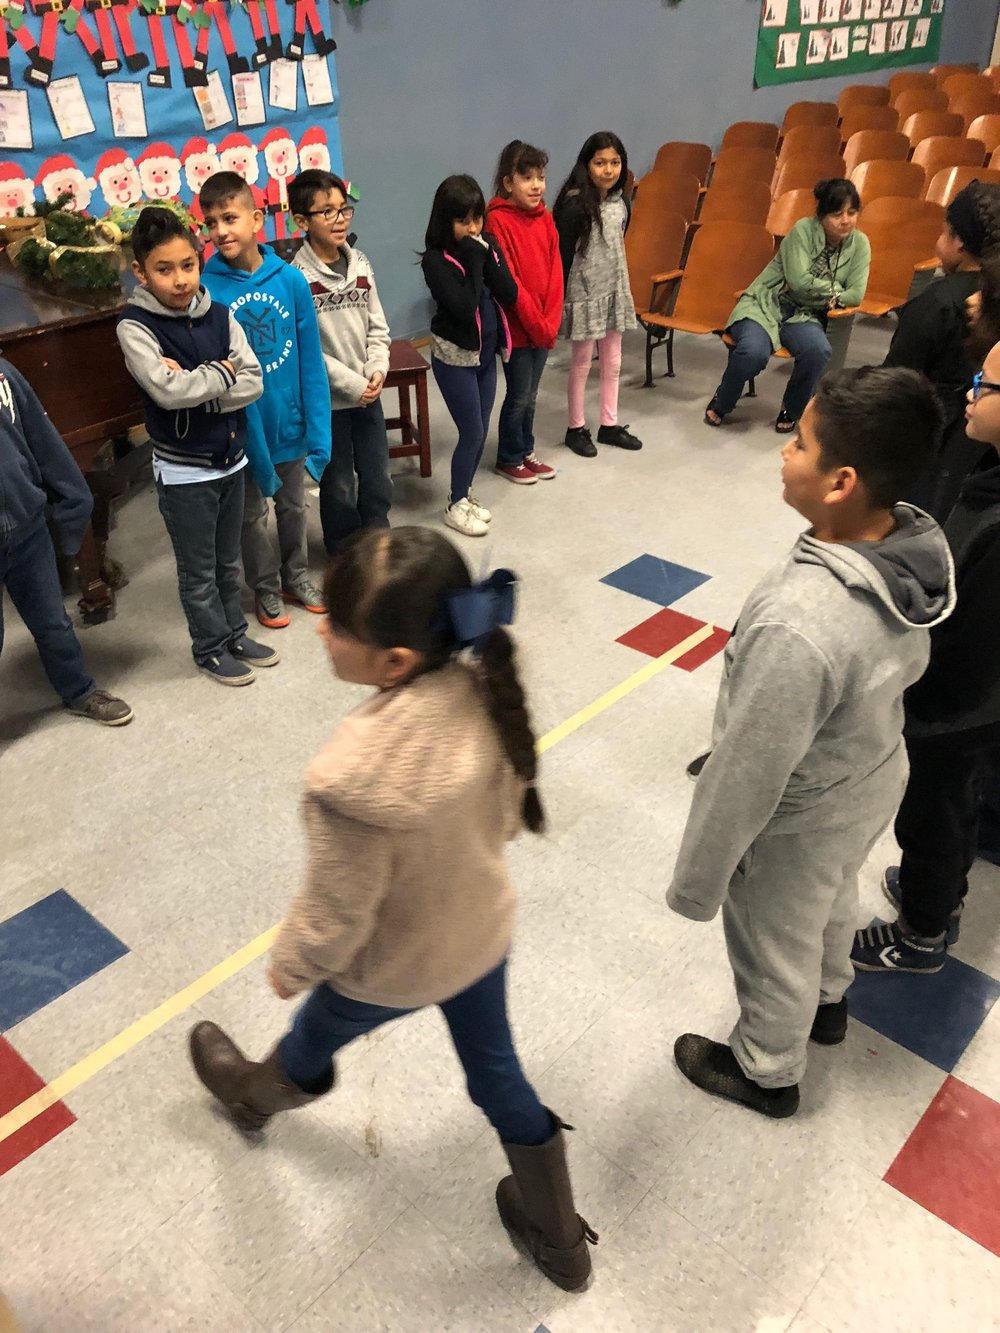 Finding Unseen Commonalities  Students participate in a stand-on-the-line game to learn what they have in common with their peers that they may not have previously realized